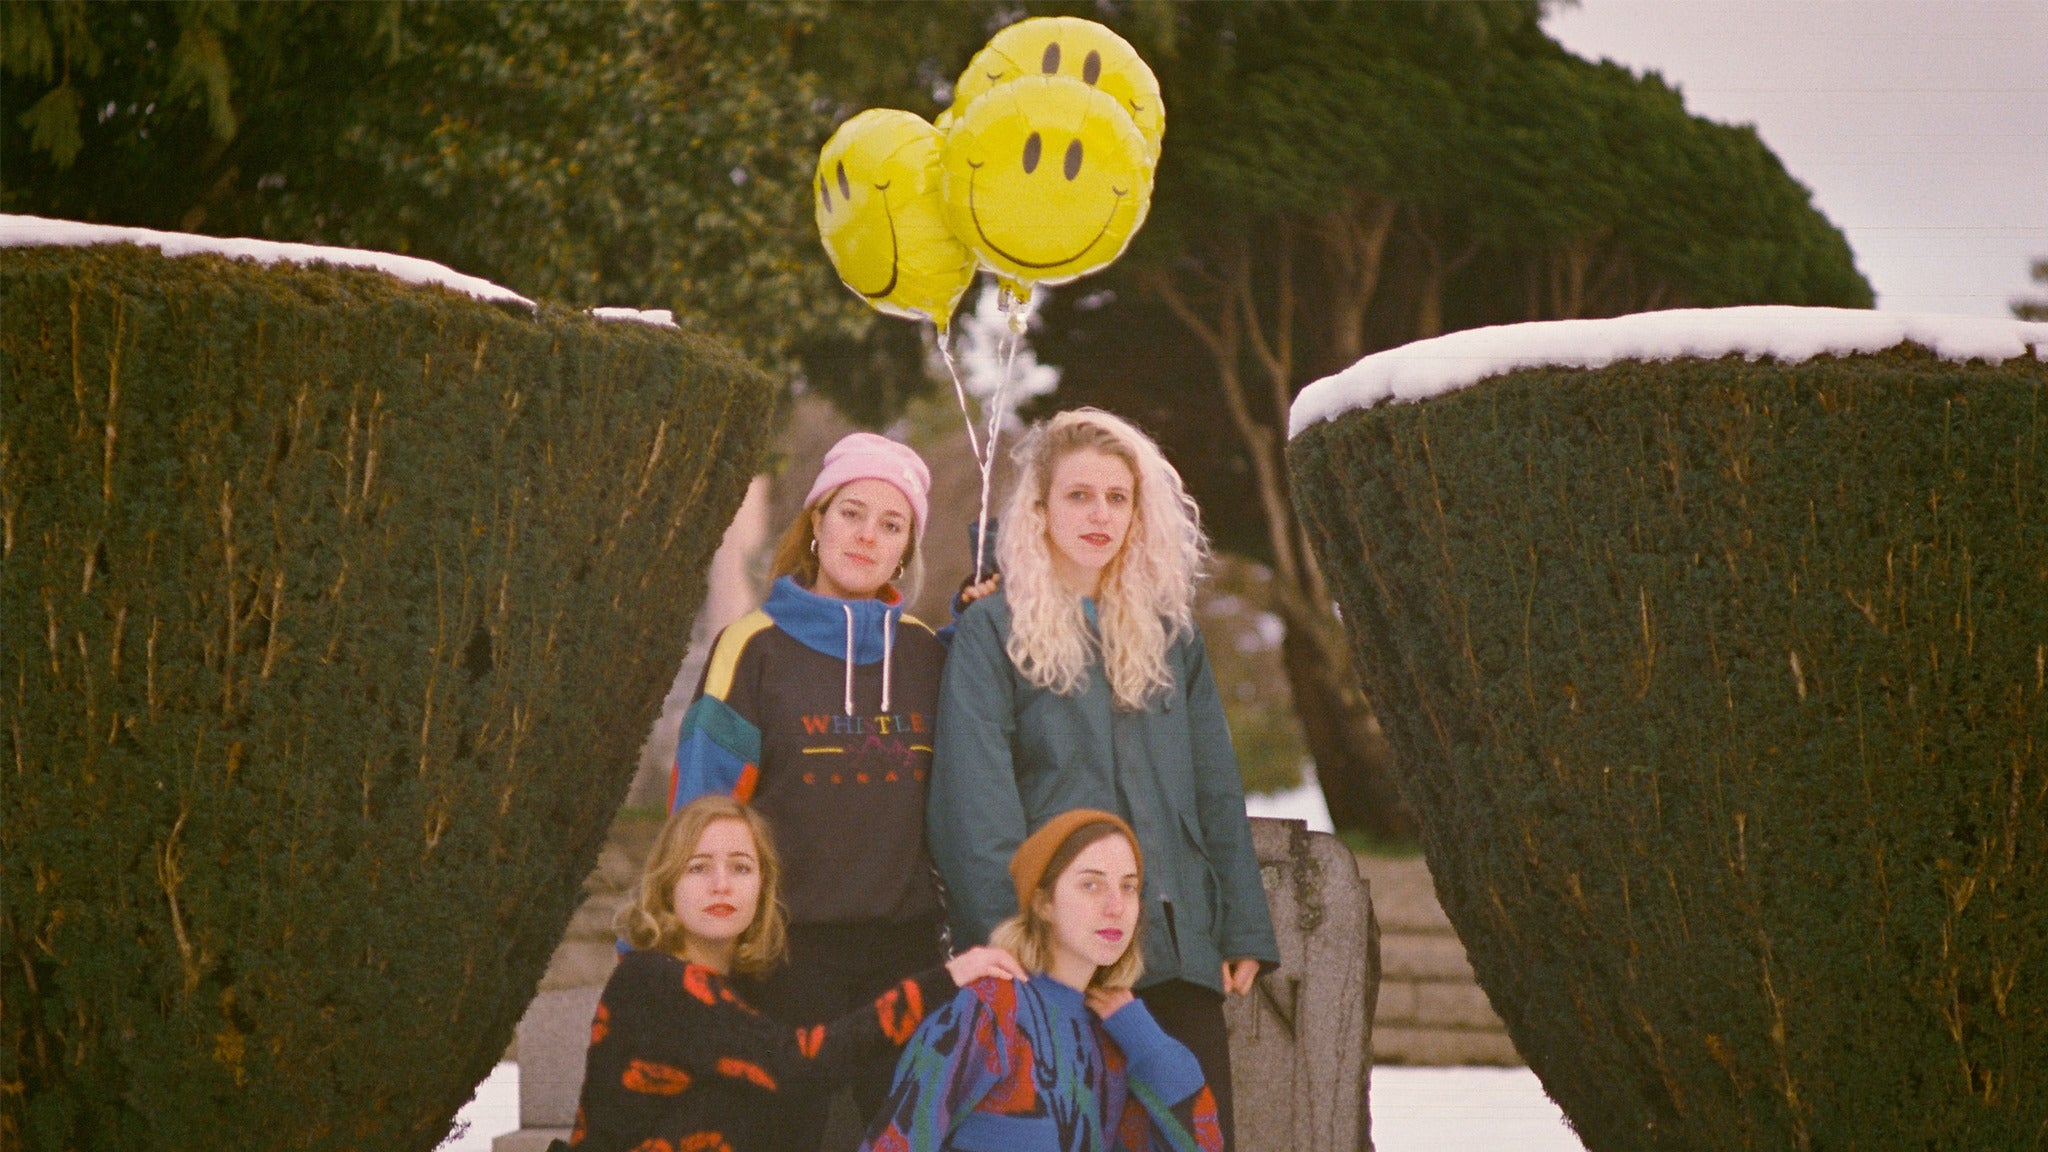 Chastity Belt at The Masquerade